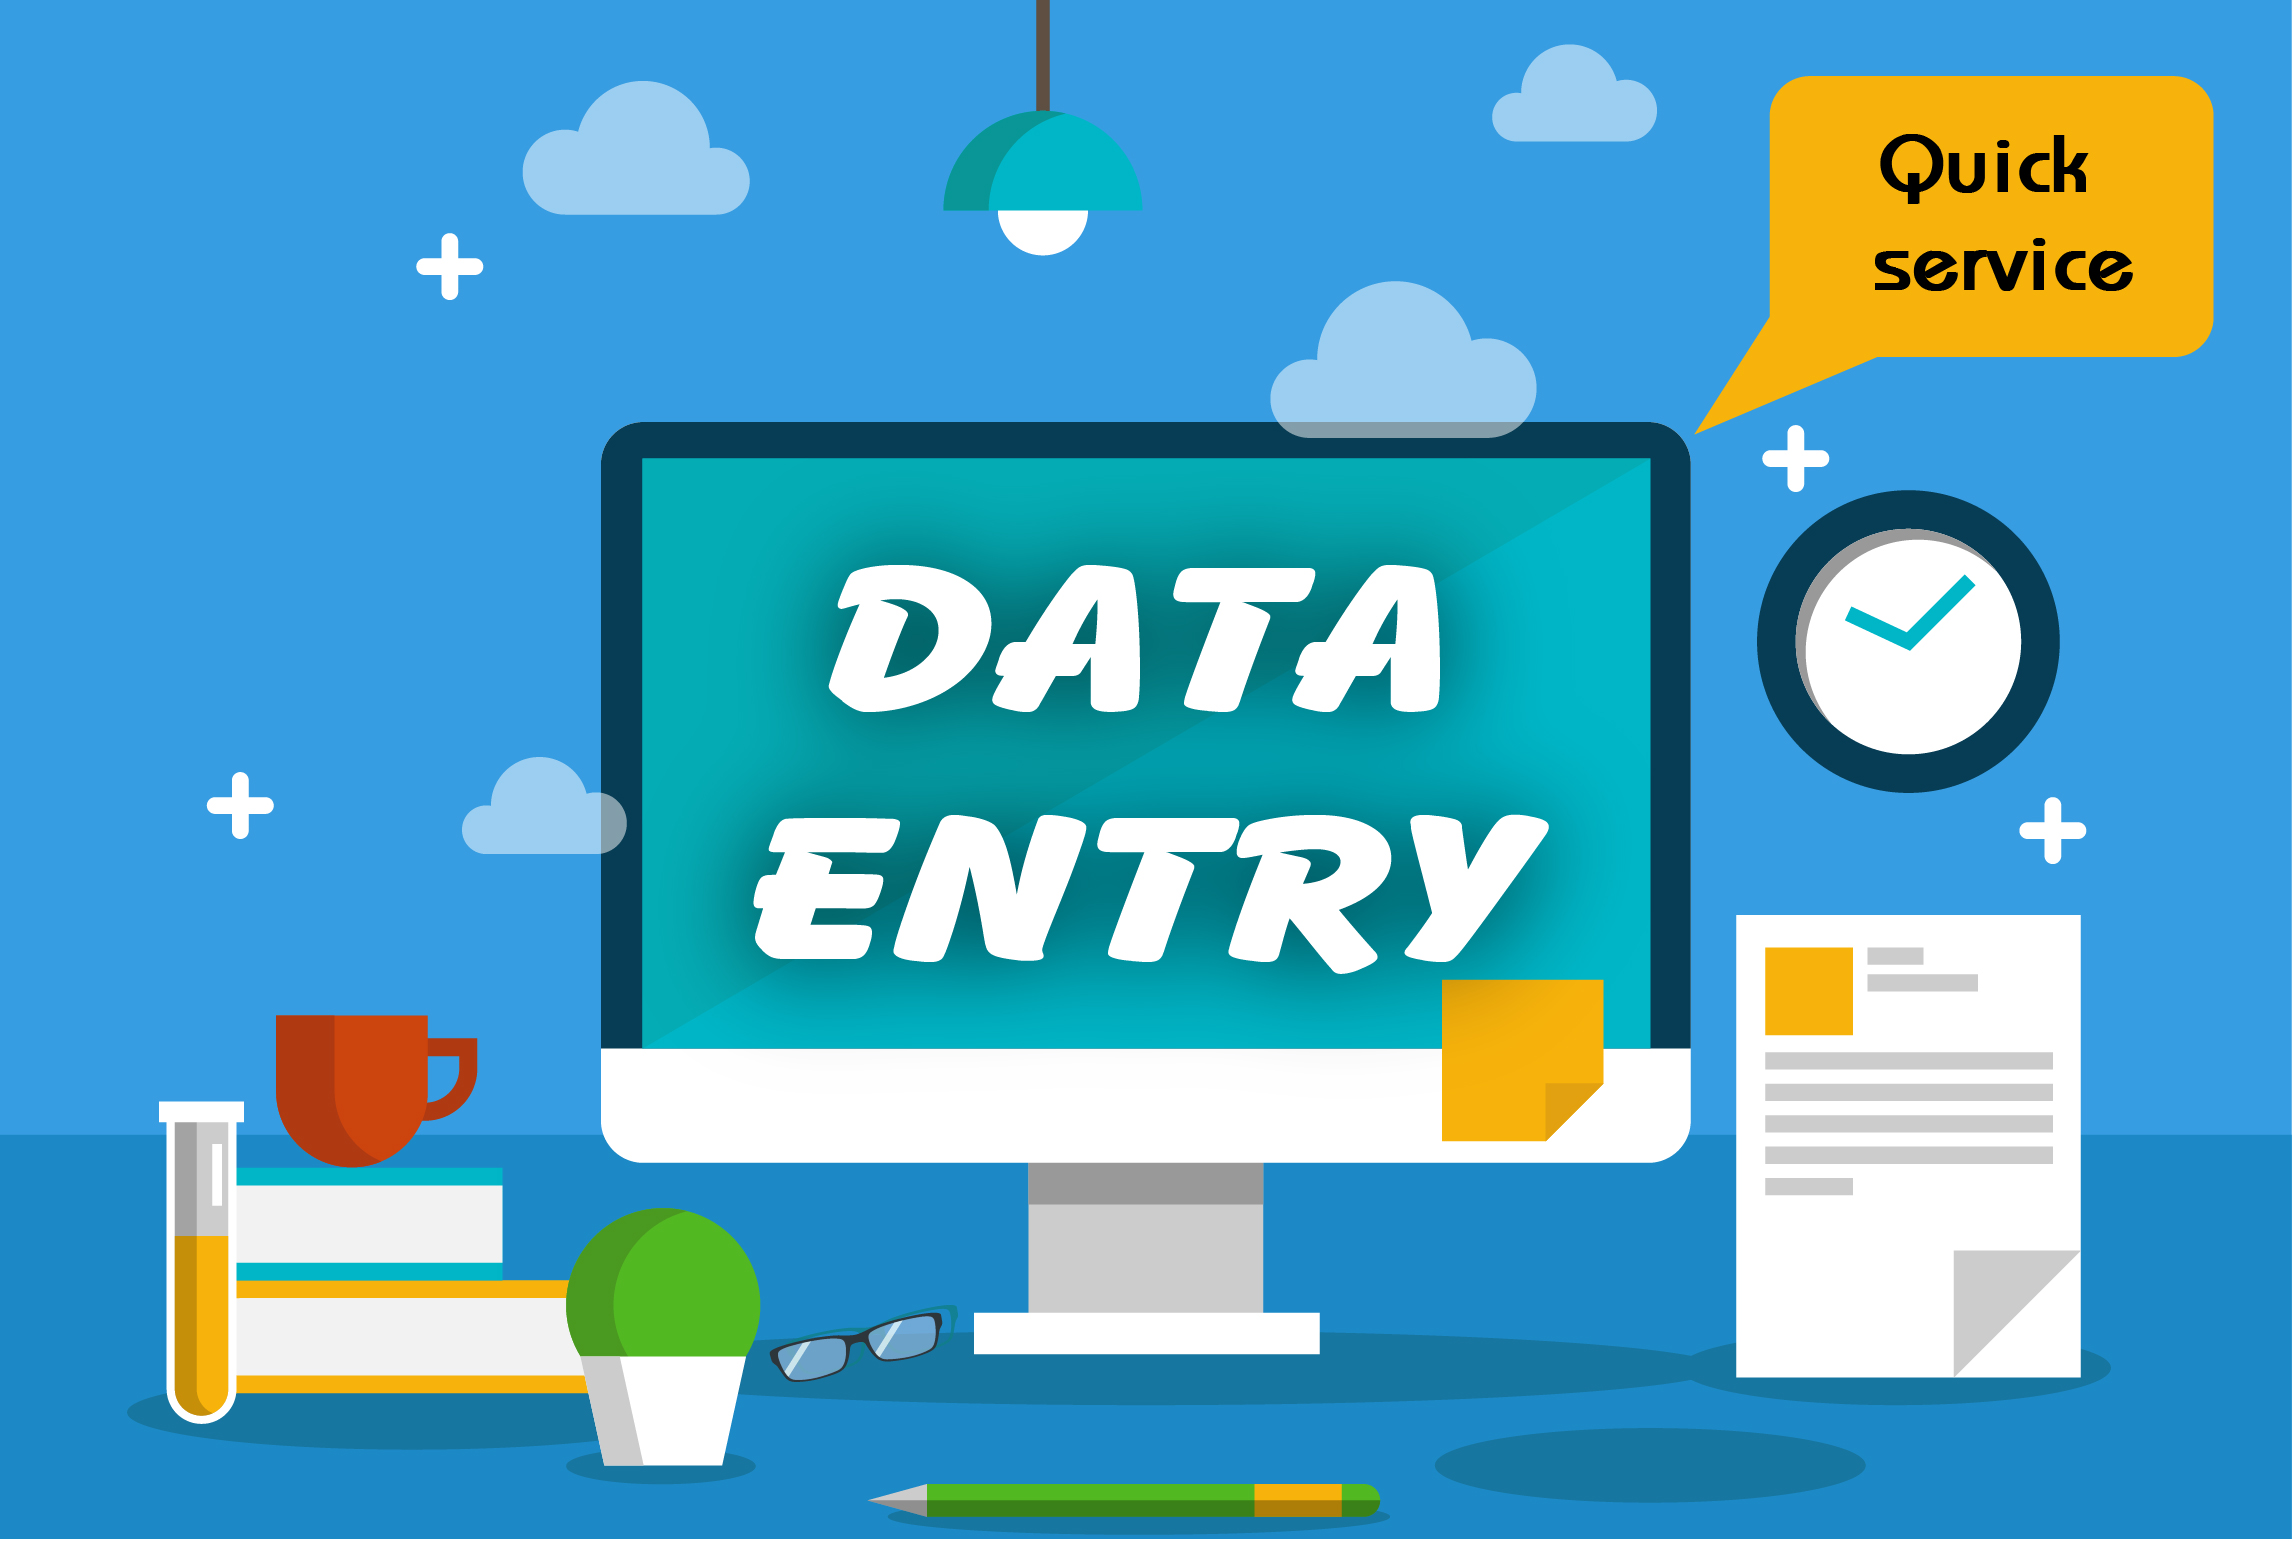 Data entry support only 3 USD per hour.